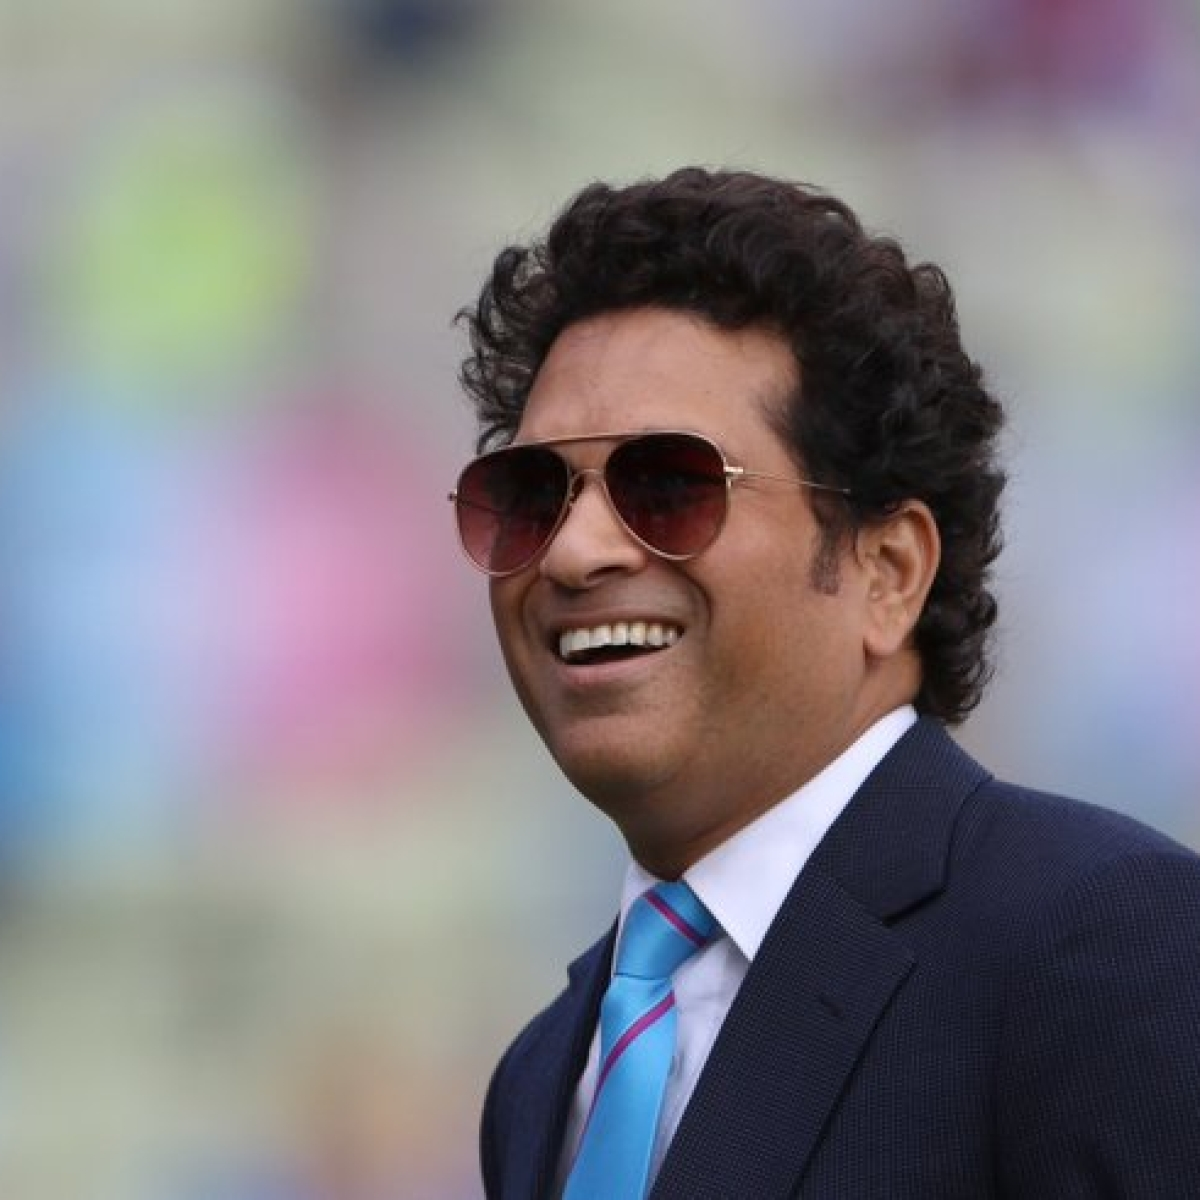 Happy birthday Sachin Tendulkar: Cricket fraternity wishes Little Master on his 47th birthday